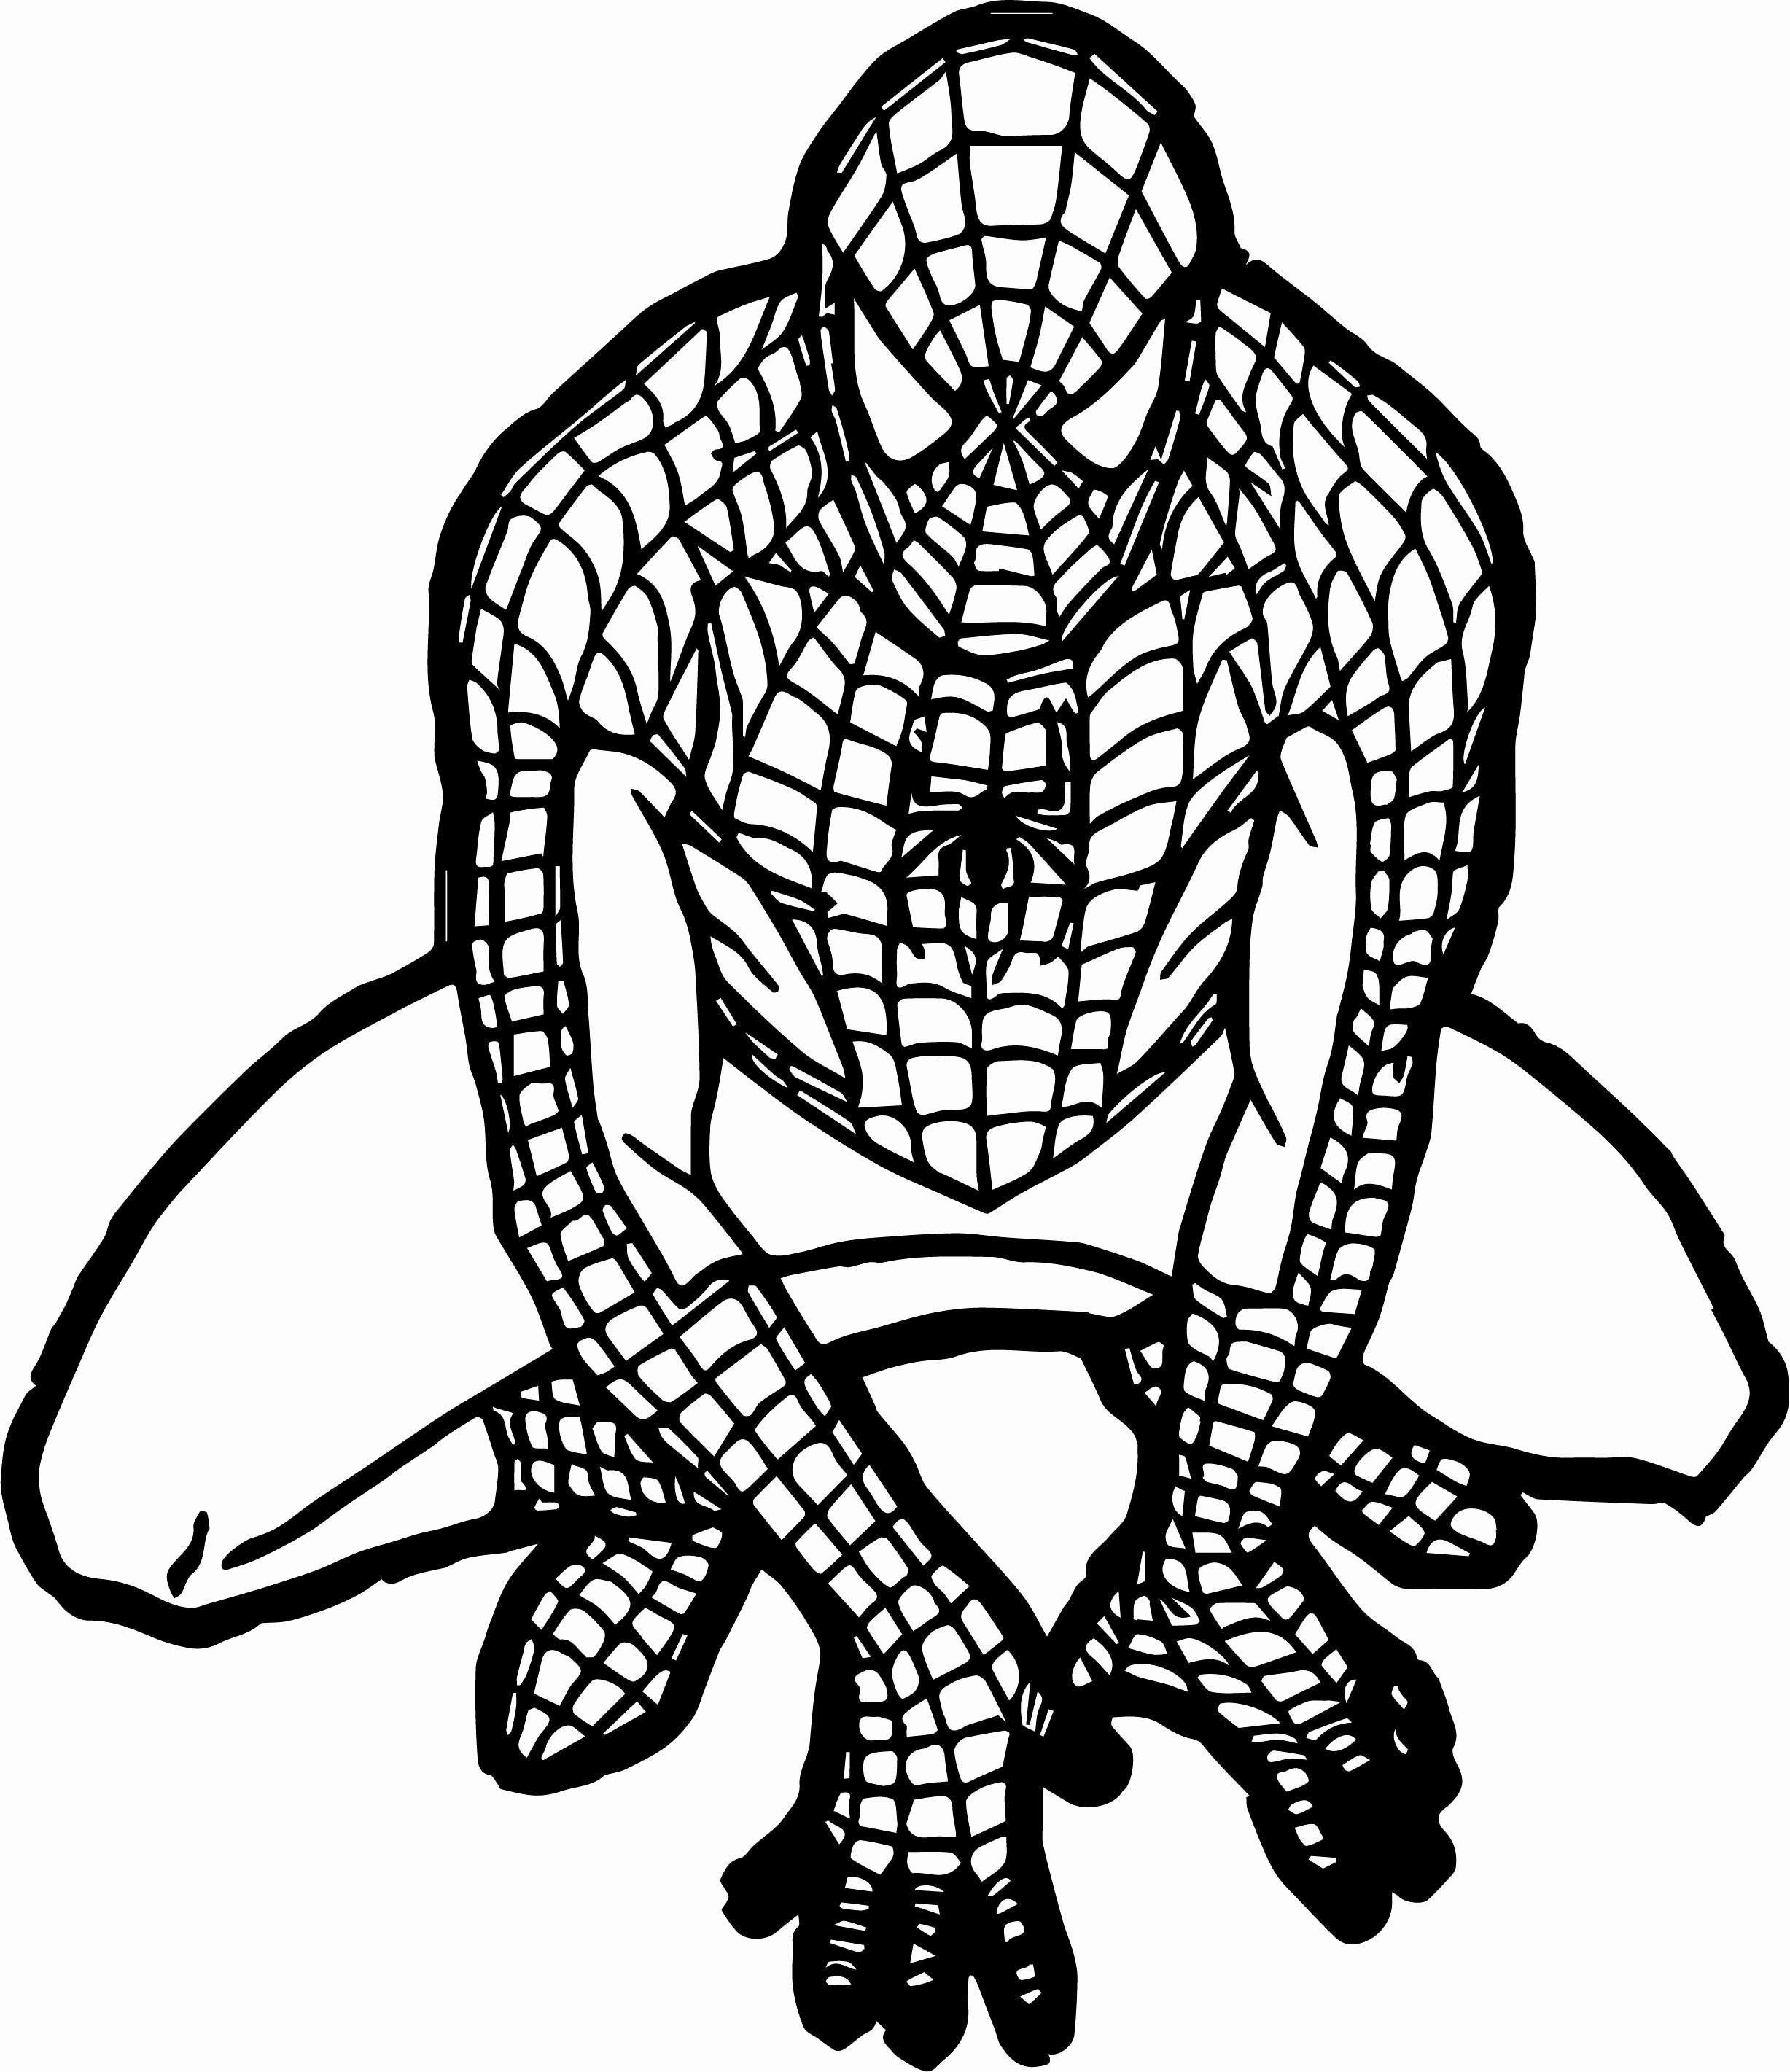 Free Coloring Pages Spiderman Elegant Spiderman Clipart Black And Spiderman Coloring Pages Spiderman Coloring